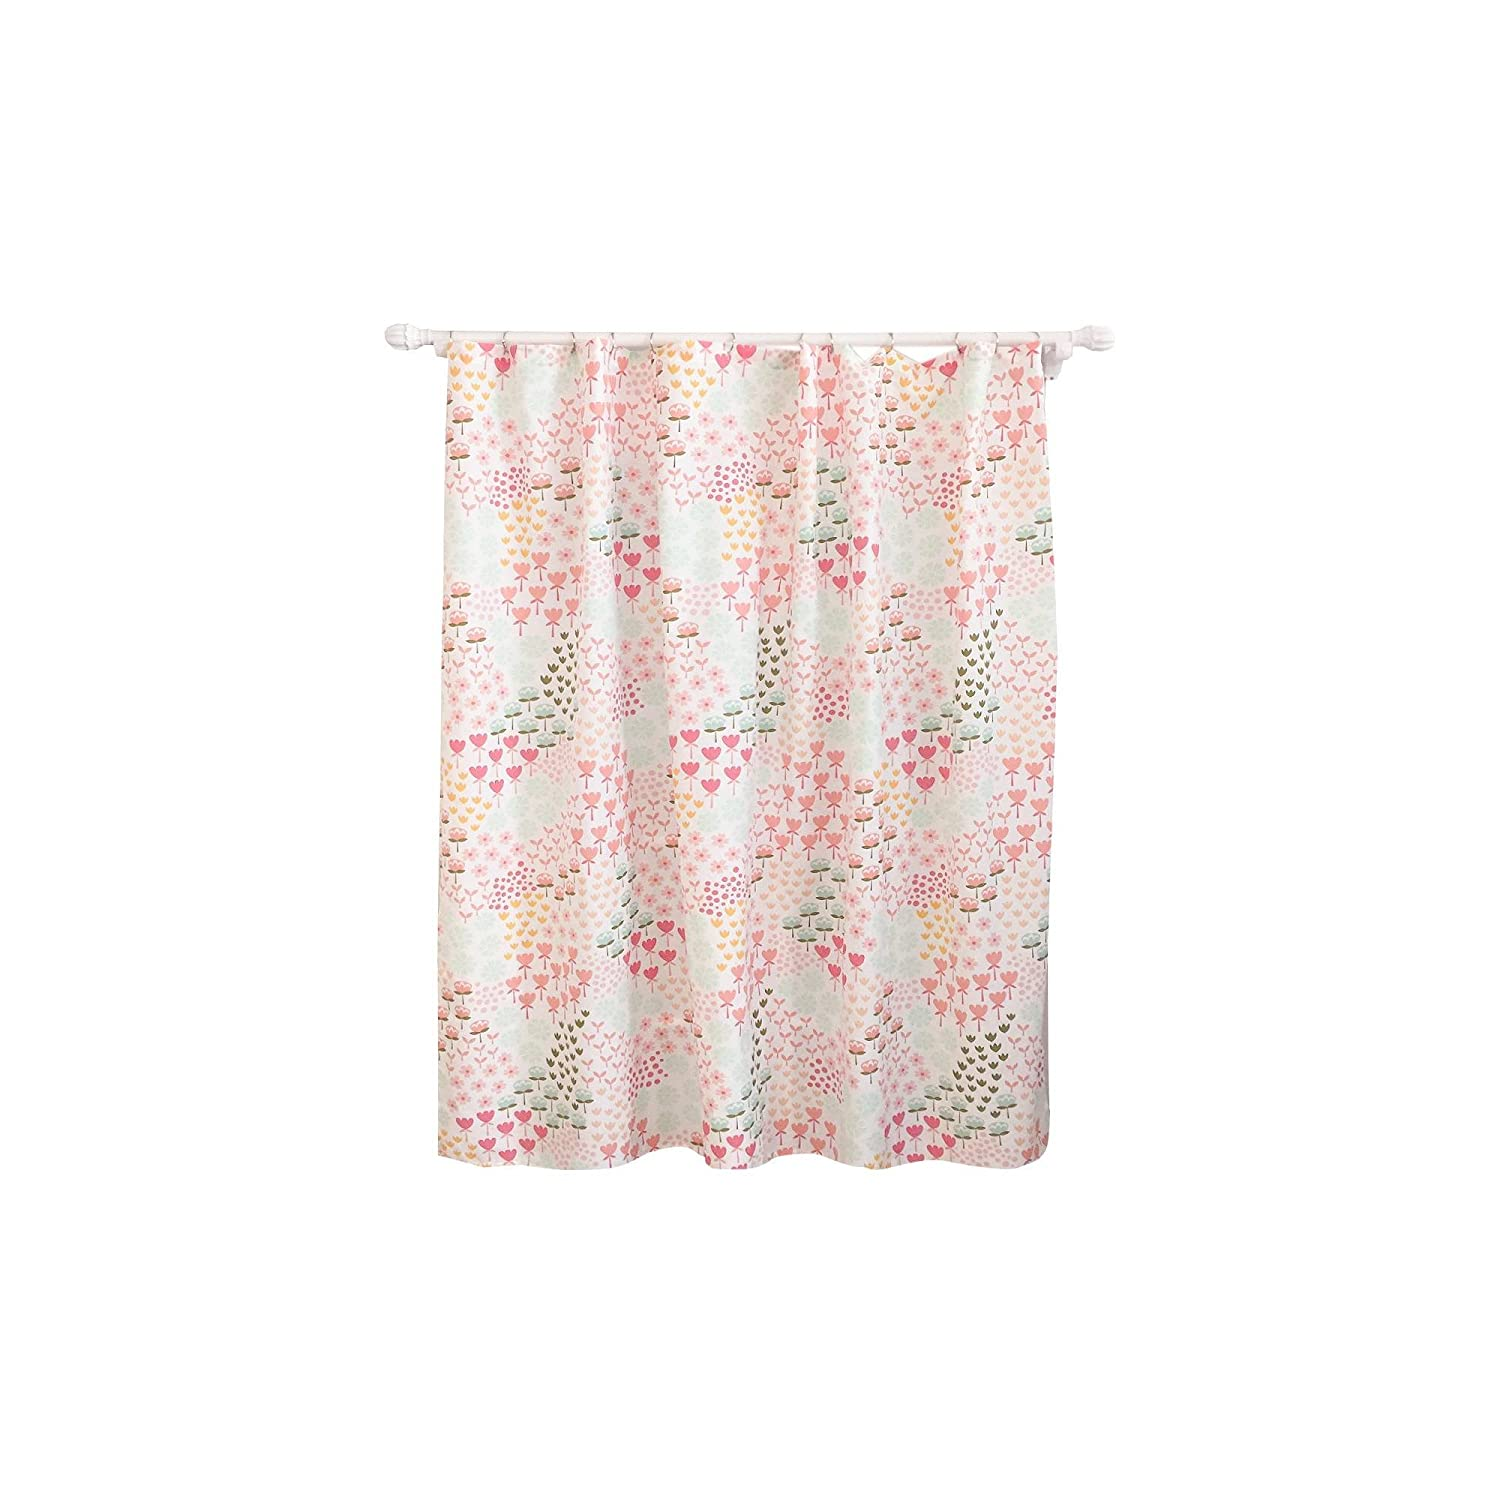 Pillowfort Twill Light Blocking Floral Curtain Panel